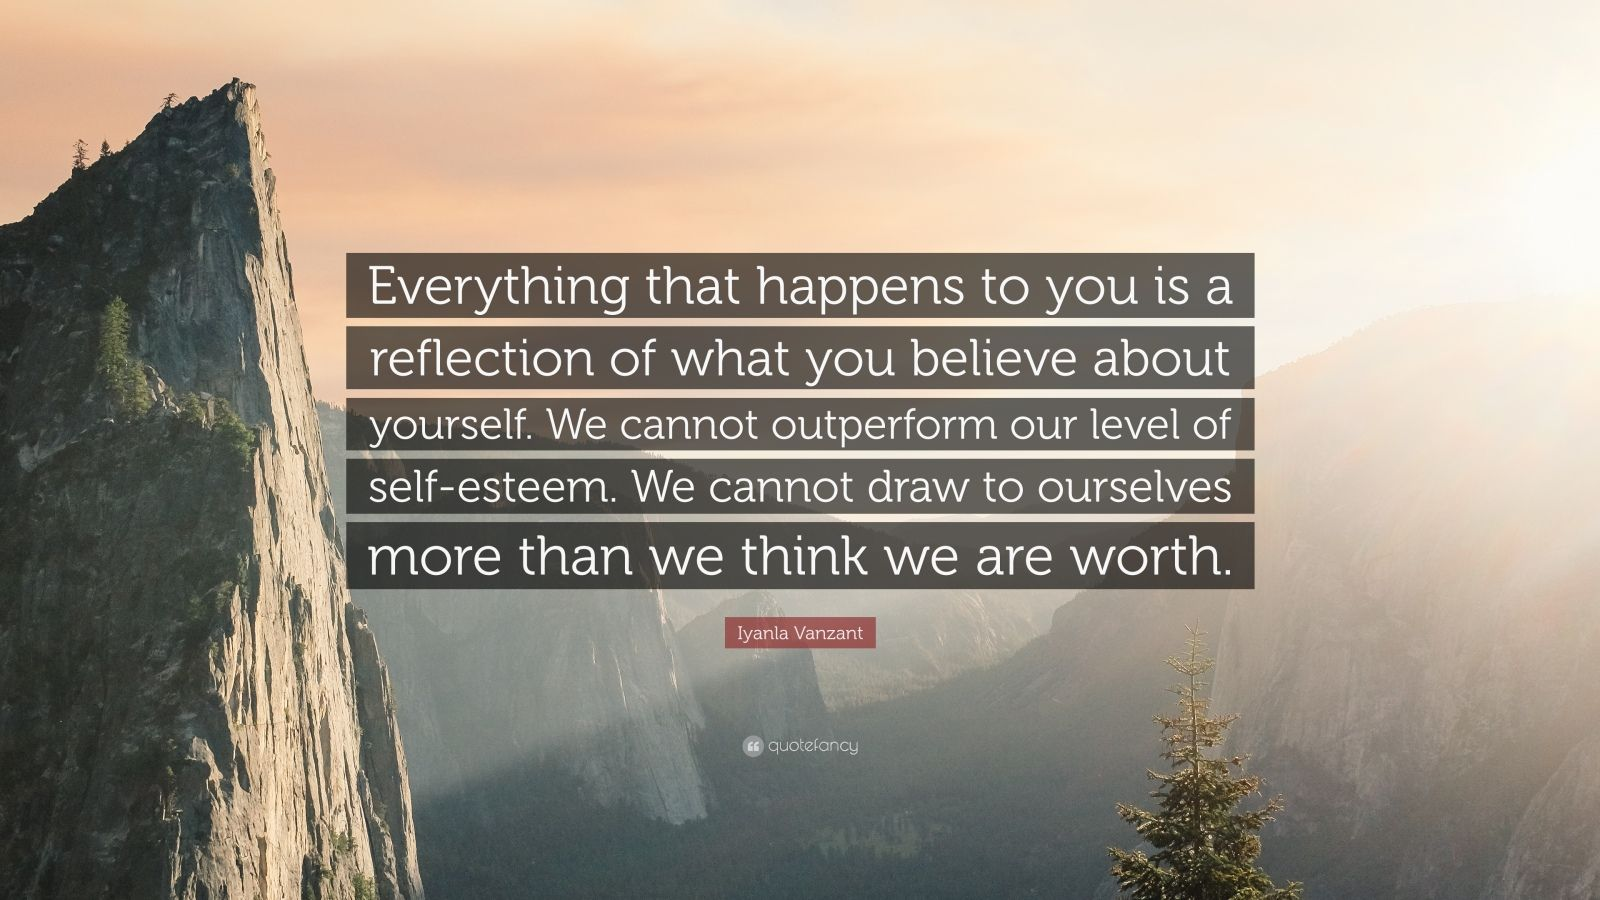 "Iyanla Vanzant Quote: ""Everything that happens to you is a reflection of what you believe about yourself. We cannot outperform our level of self-esteem. We cannot draw to ourselves more than we think we are worth."""